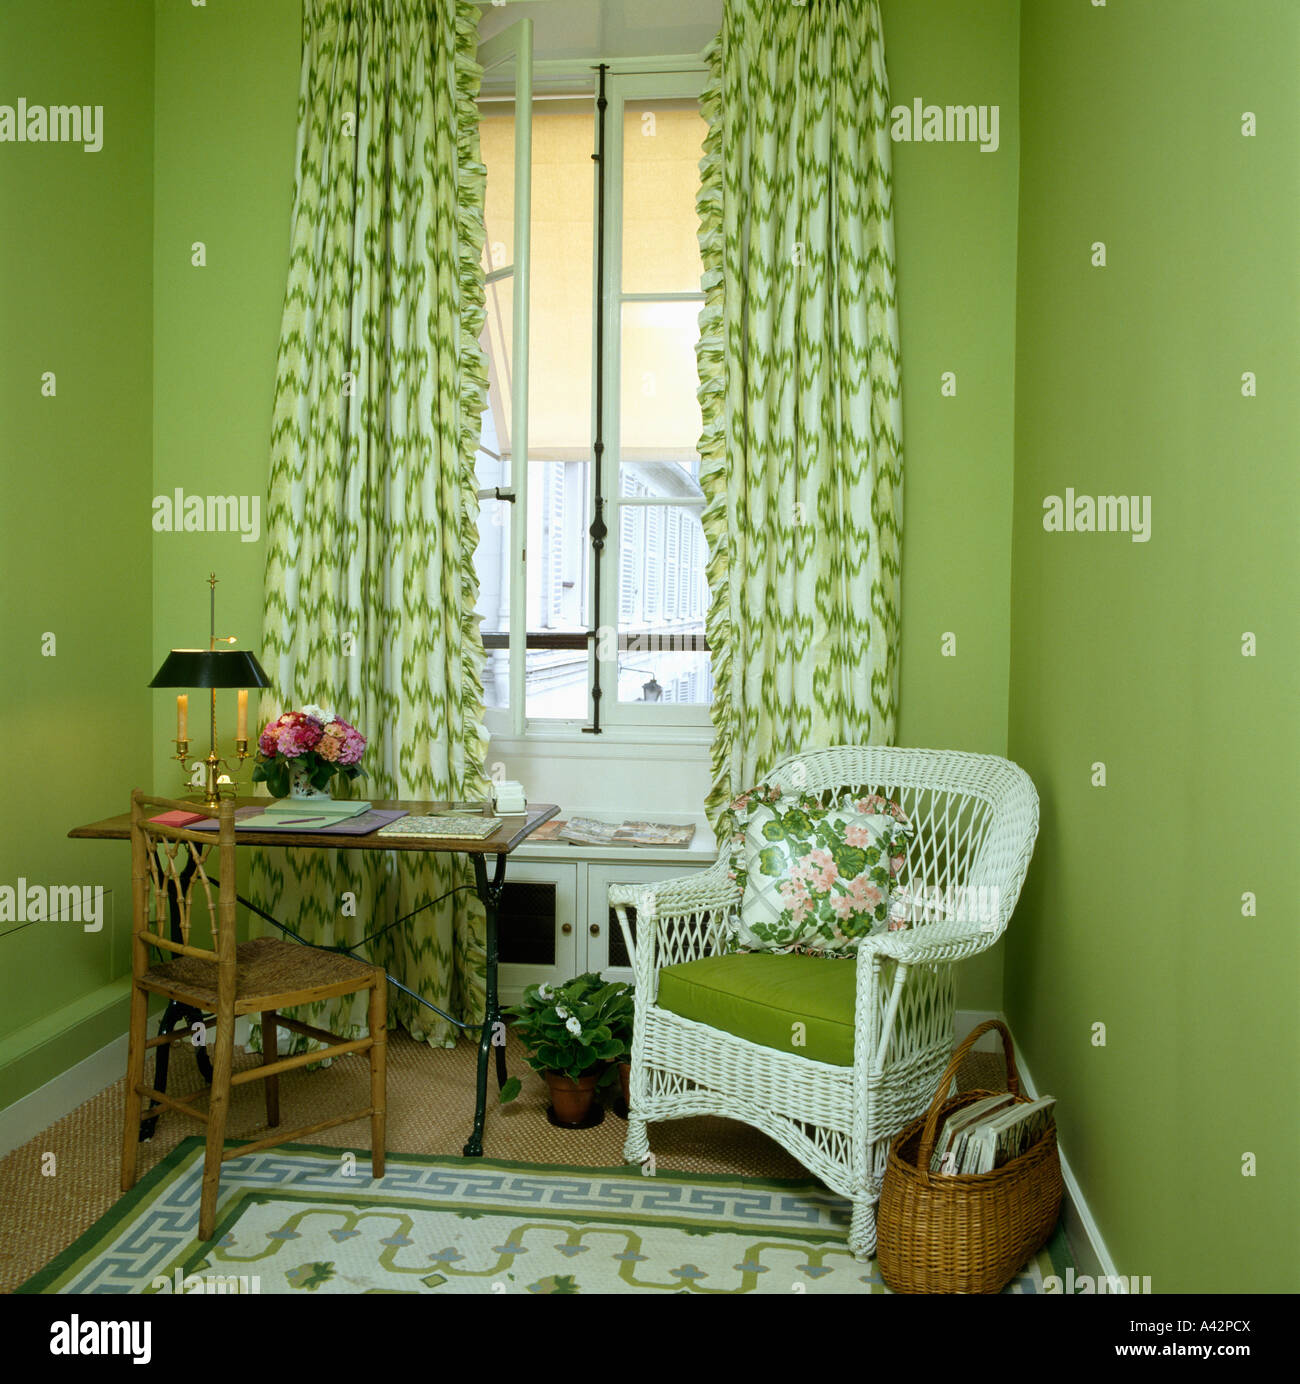 Small Green Workroom With And White Patterned Drapes Wicker Chair Cushion